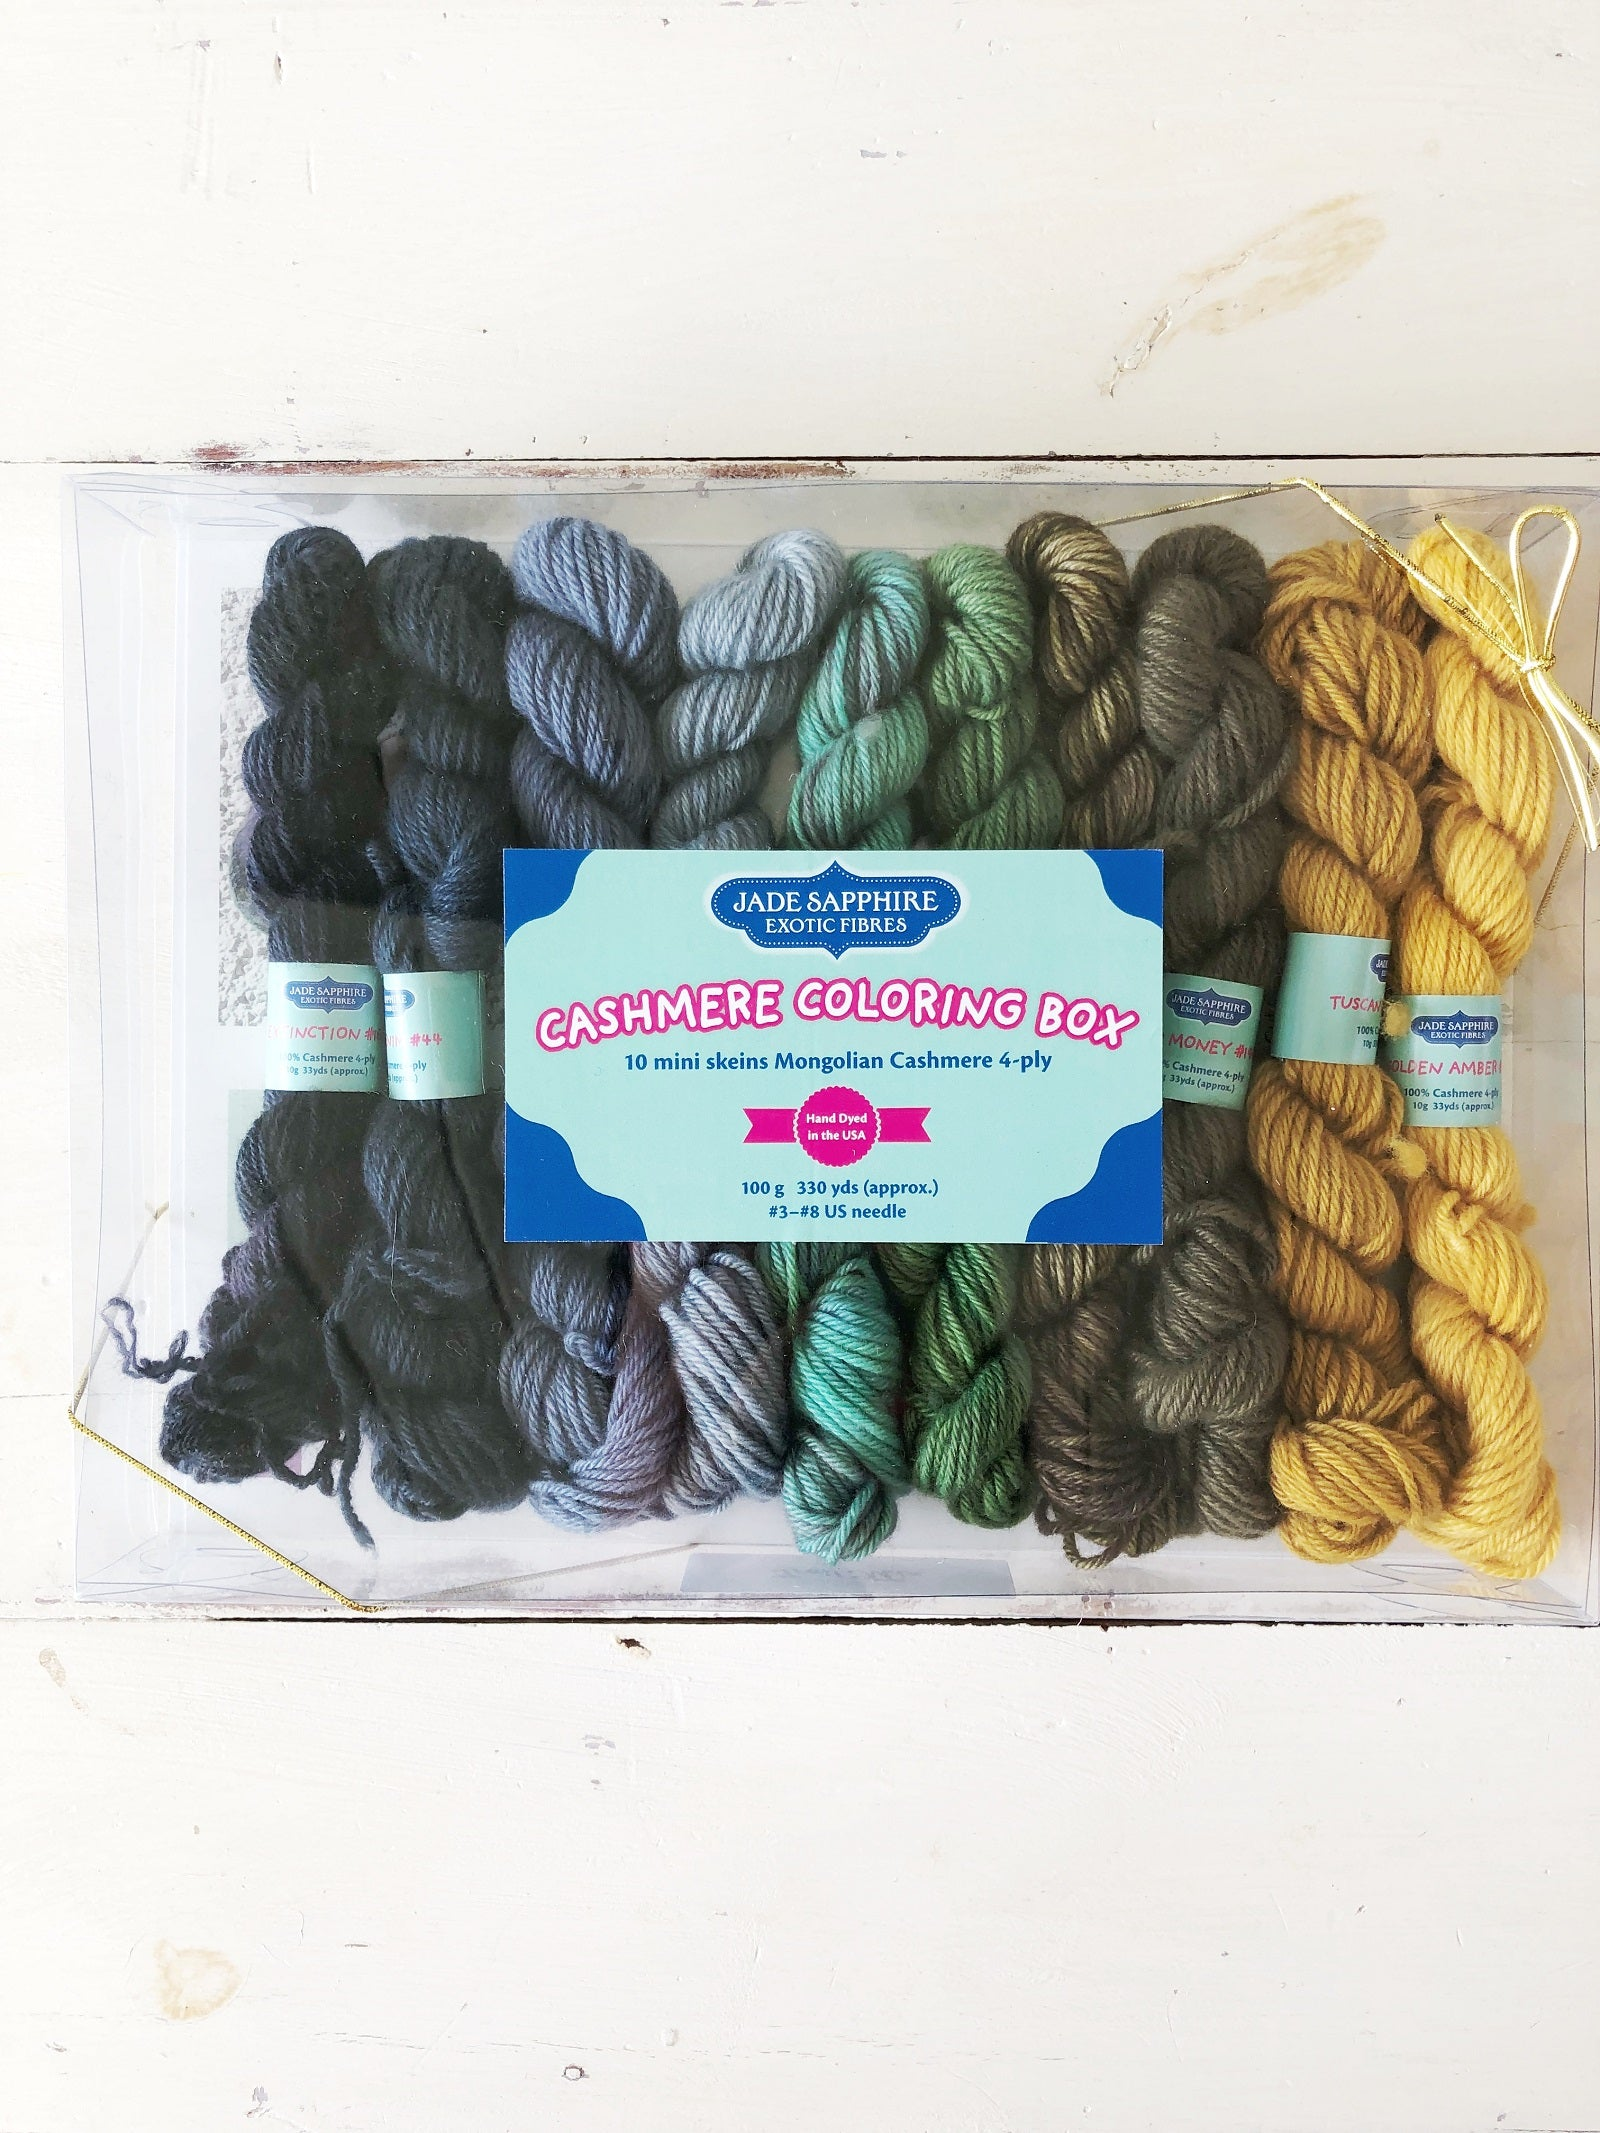 Jade Sapphire Cashmere Coloring Box Kit (7 Colors to Choose From!)